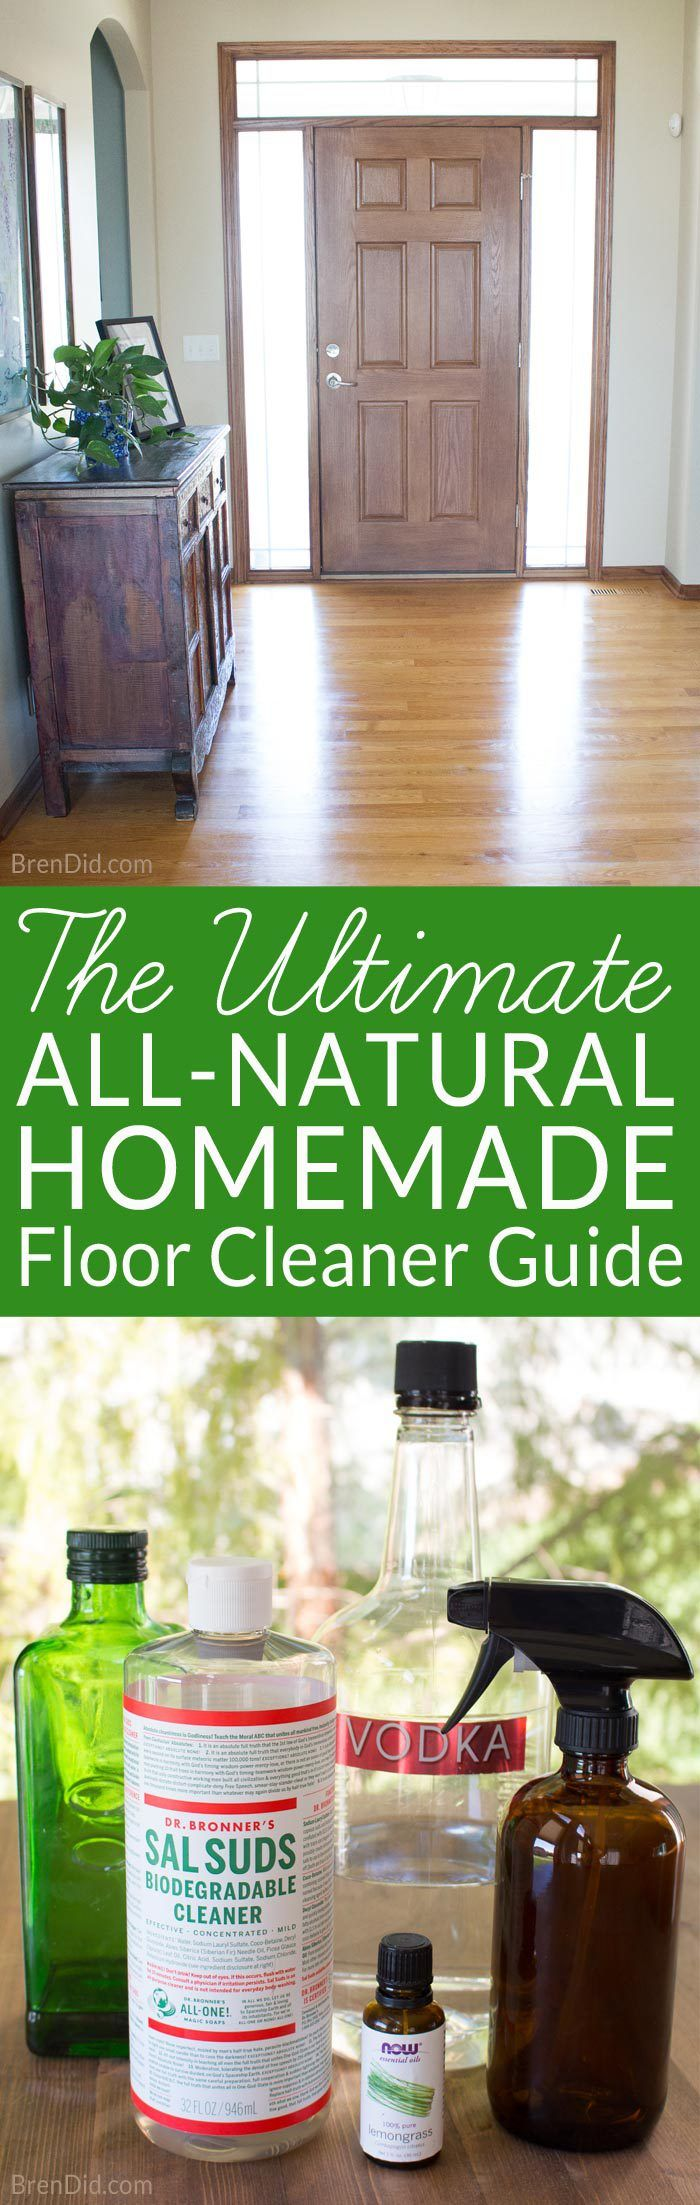 This guide to natural floor cleaning & homemade floor cleaner recipe will keep all your hard surfaces in tip top shape. All purpose natural floor cleaner for hardwood, laminate, tile and more. Best DIY floor cleaning recipe.